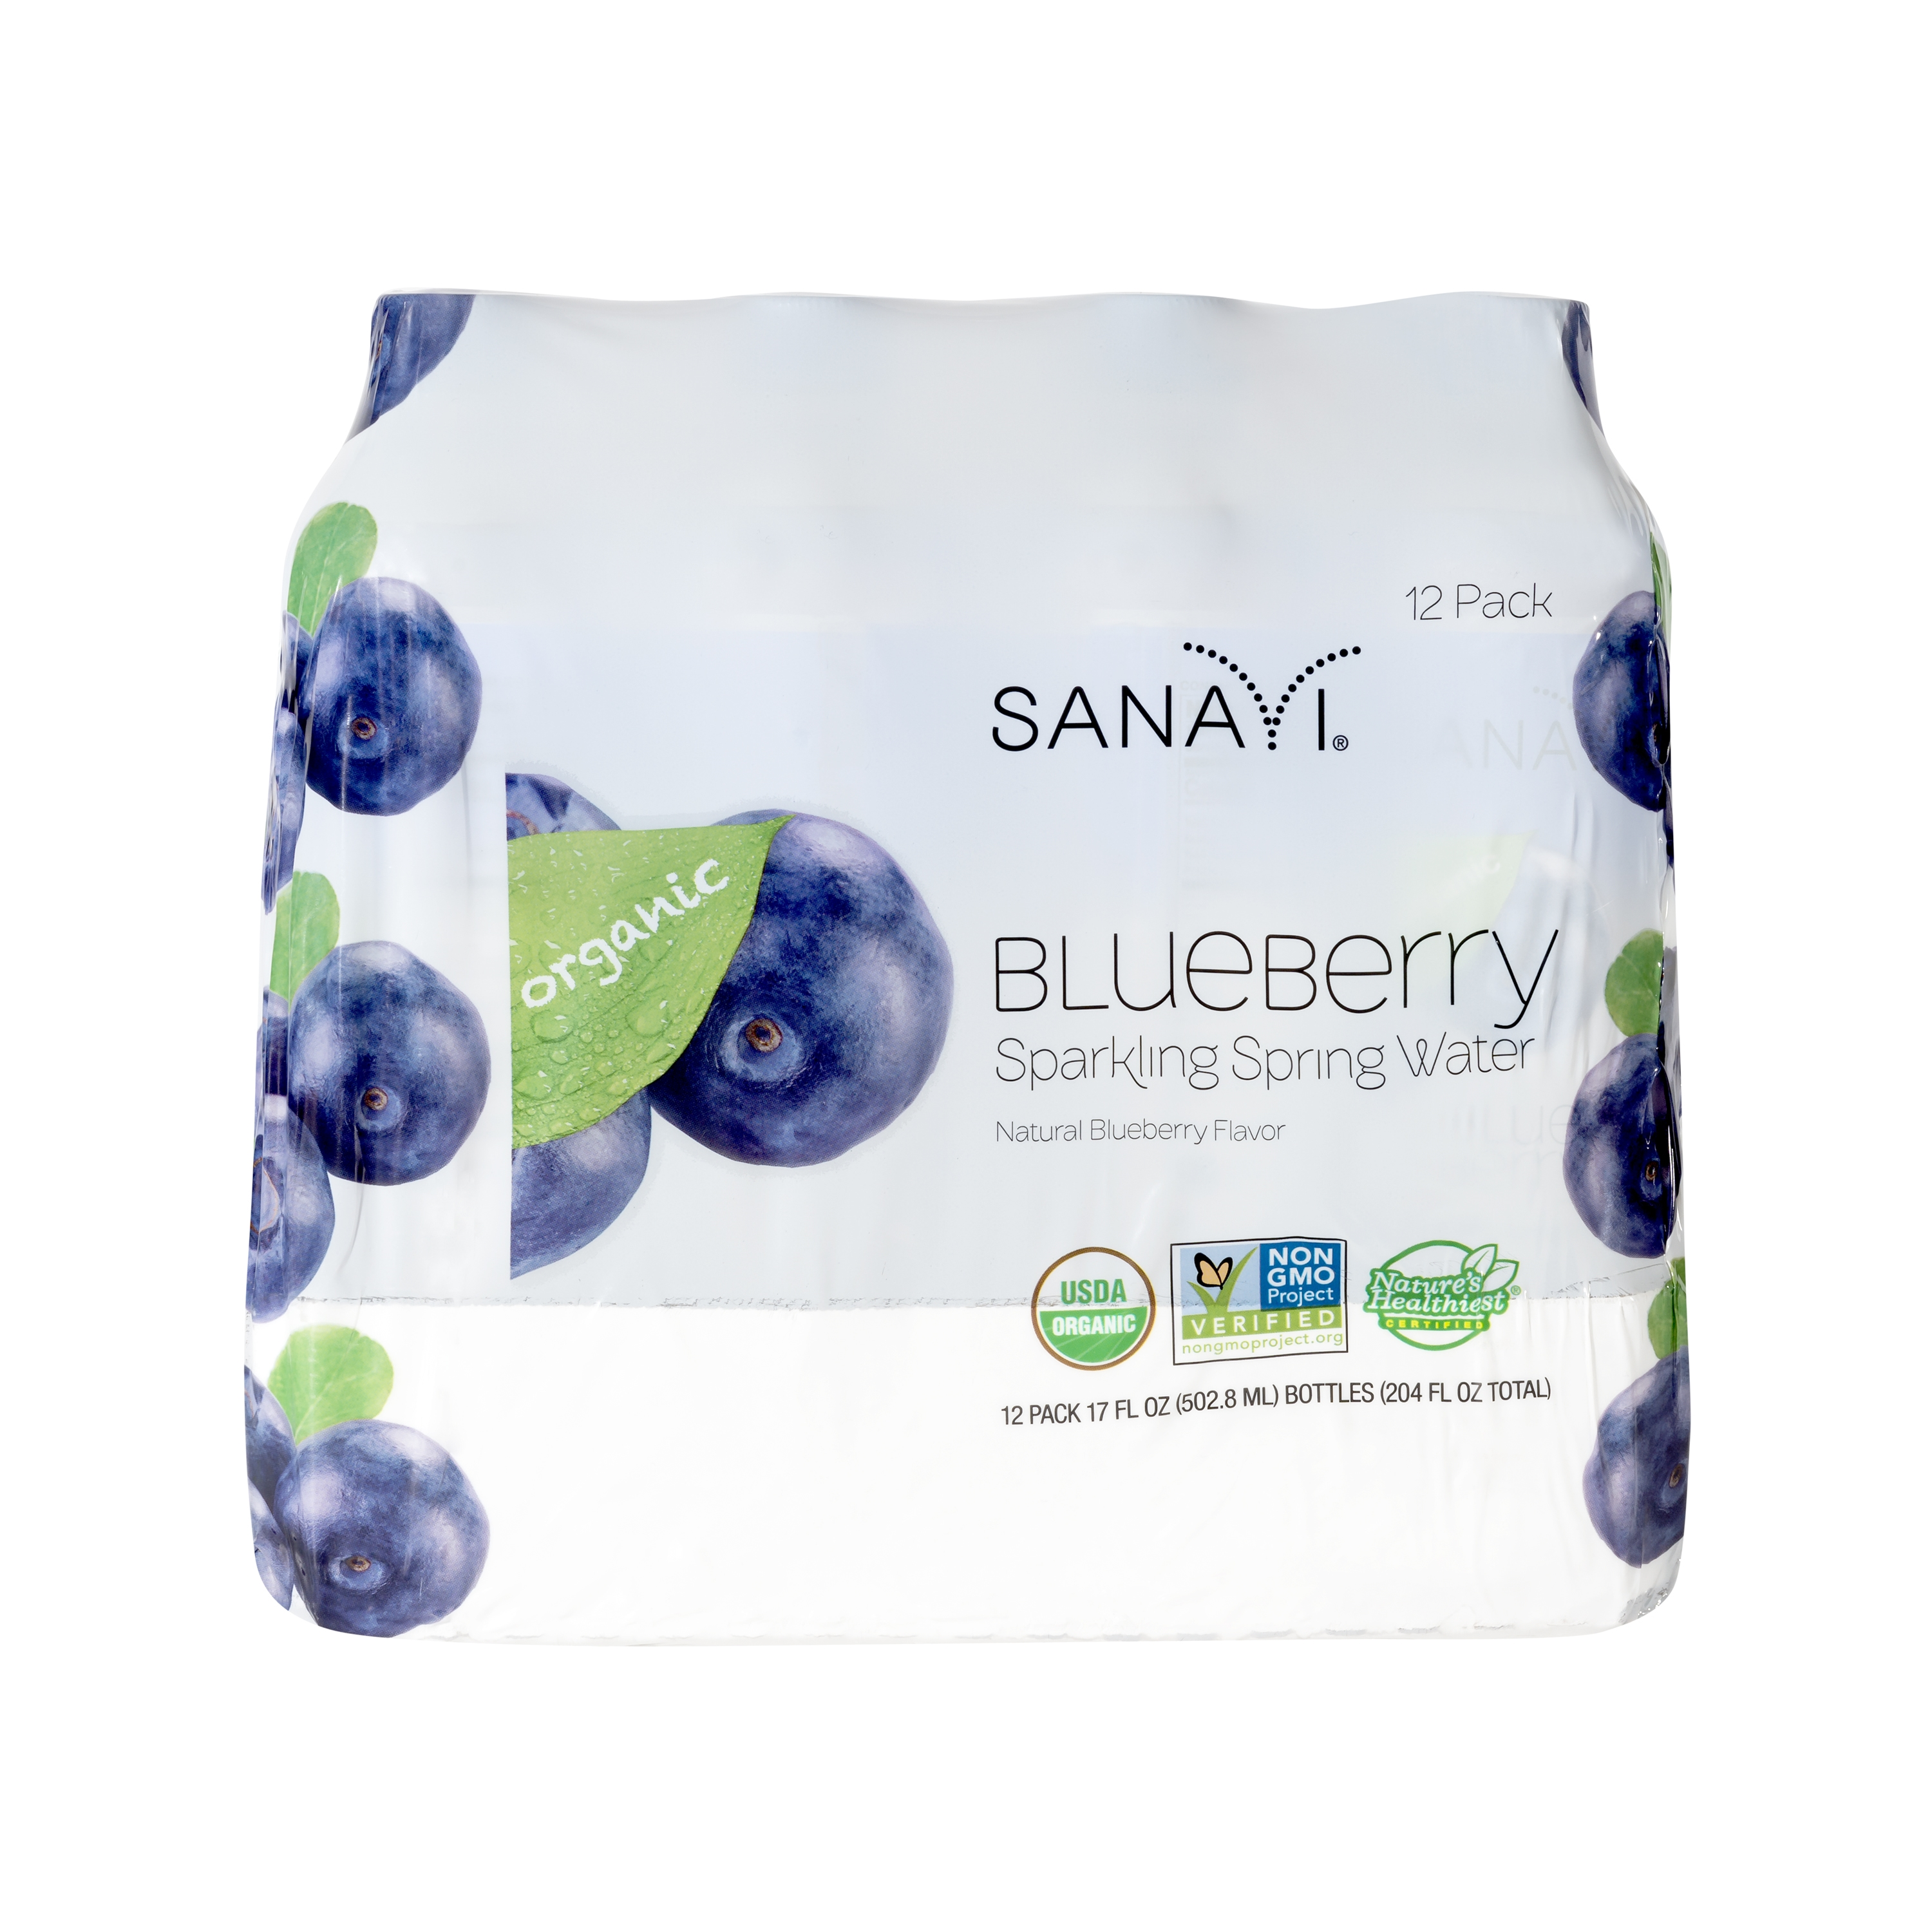 Sanavi Blueberry Sparkling Spring Water, 17 oz (12 Pack)